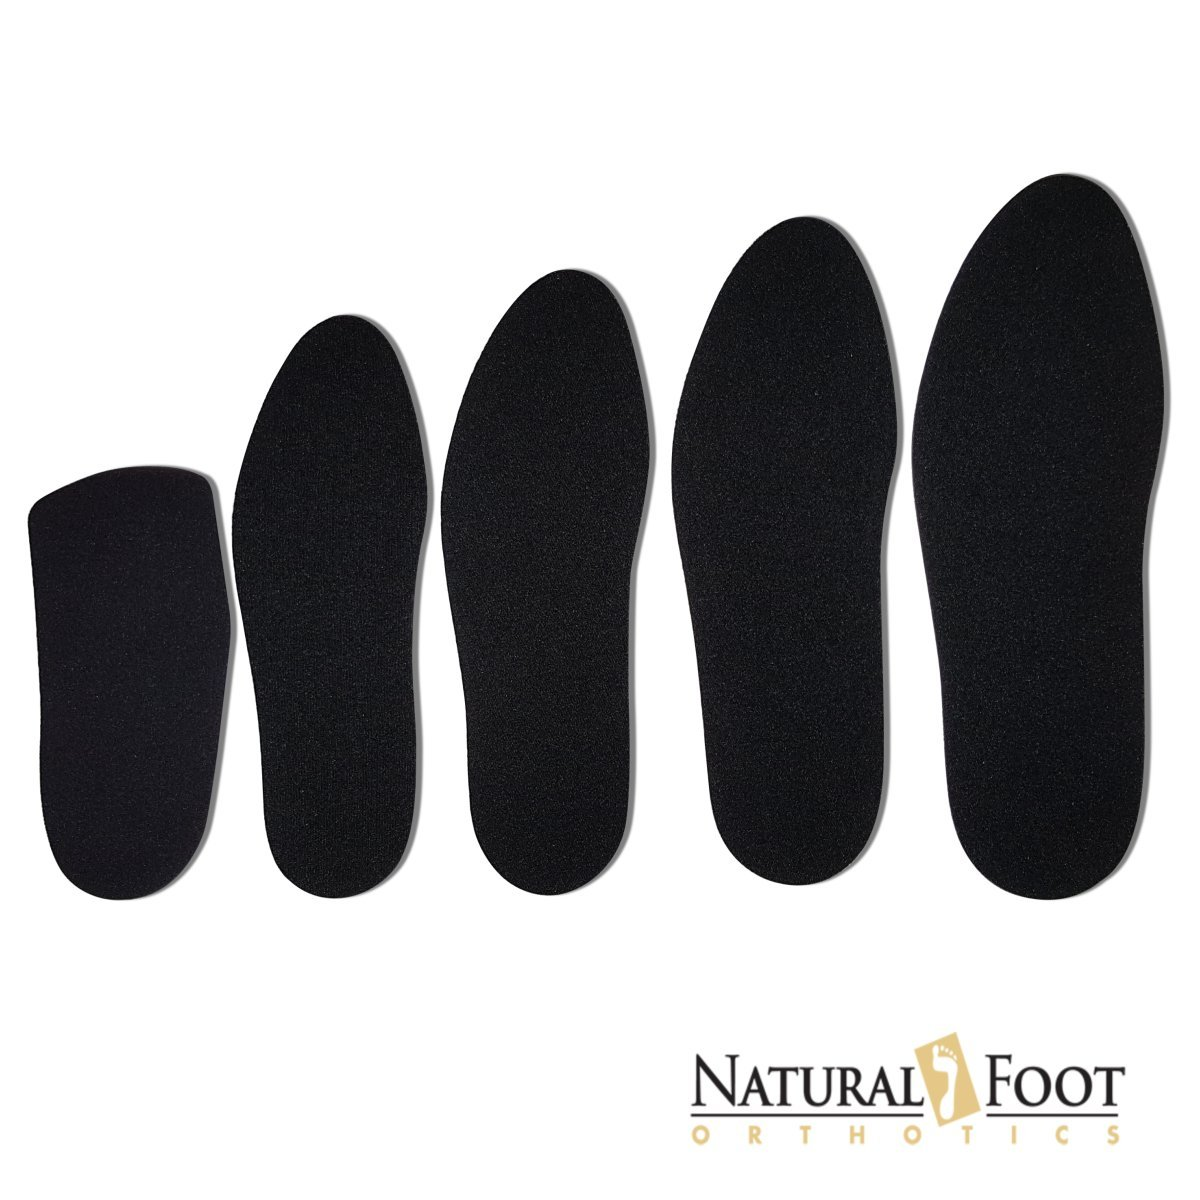 Natural Foot Orthotic Cushions, Natural Sponge Rubber Cushions with a Nylon Covering Perfect to be Worn Over Orthotic Arch Support Insoles. Mens Size 12 by NATURAL FOOT ORTHOTICS